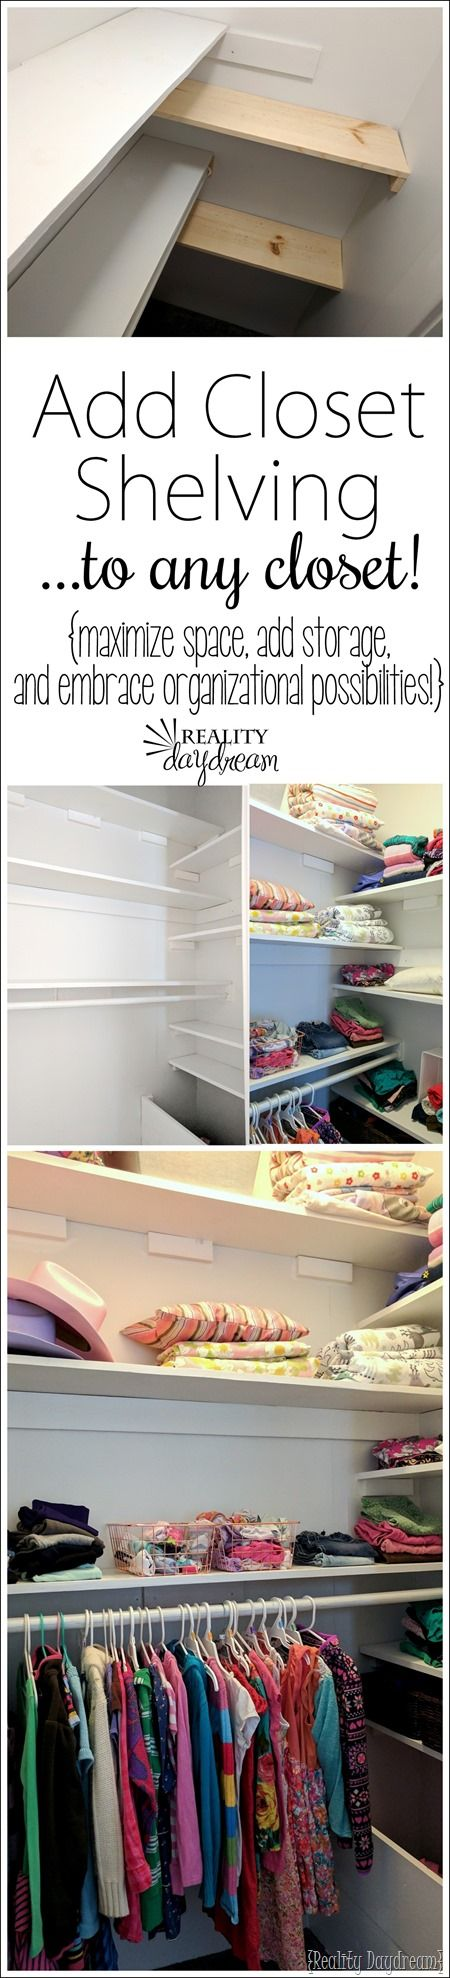 You can add SO MUCH STORAGE to any basic closet by adding easy shelving to maximize space and organization! {Reality Daydream} #organize